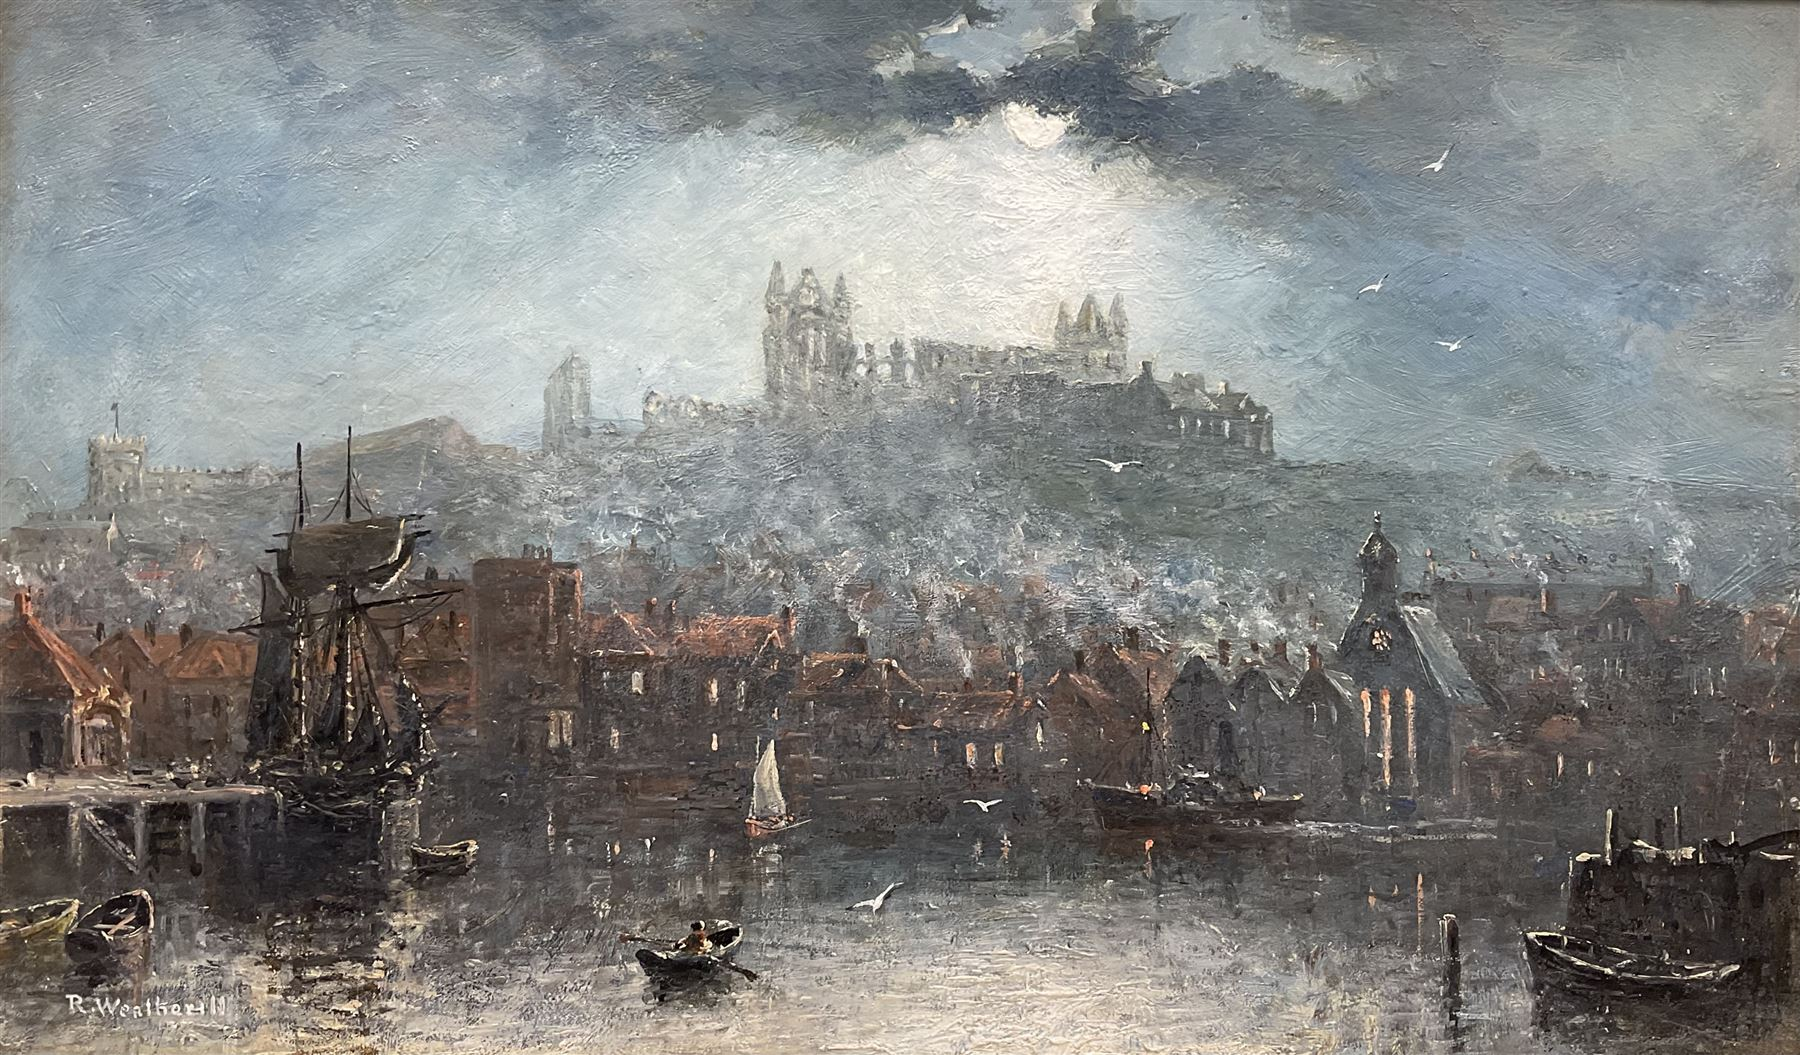 Richard Weatherill (British 1844-1913): Whitby Harbour and Abbey by Moonlight